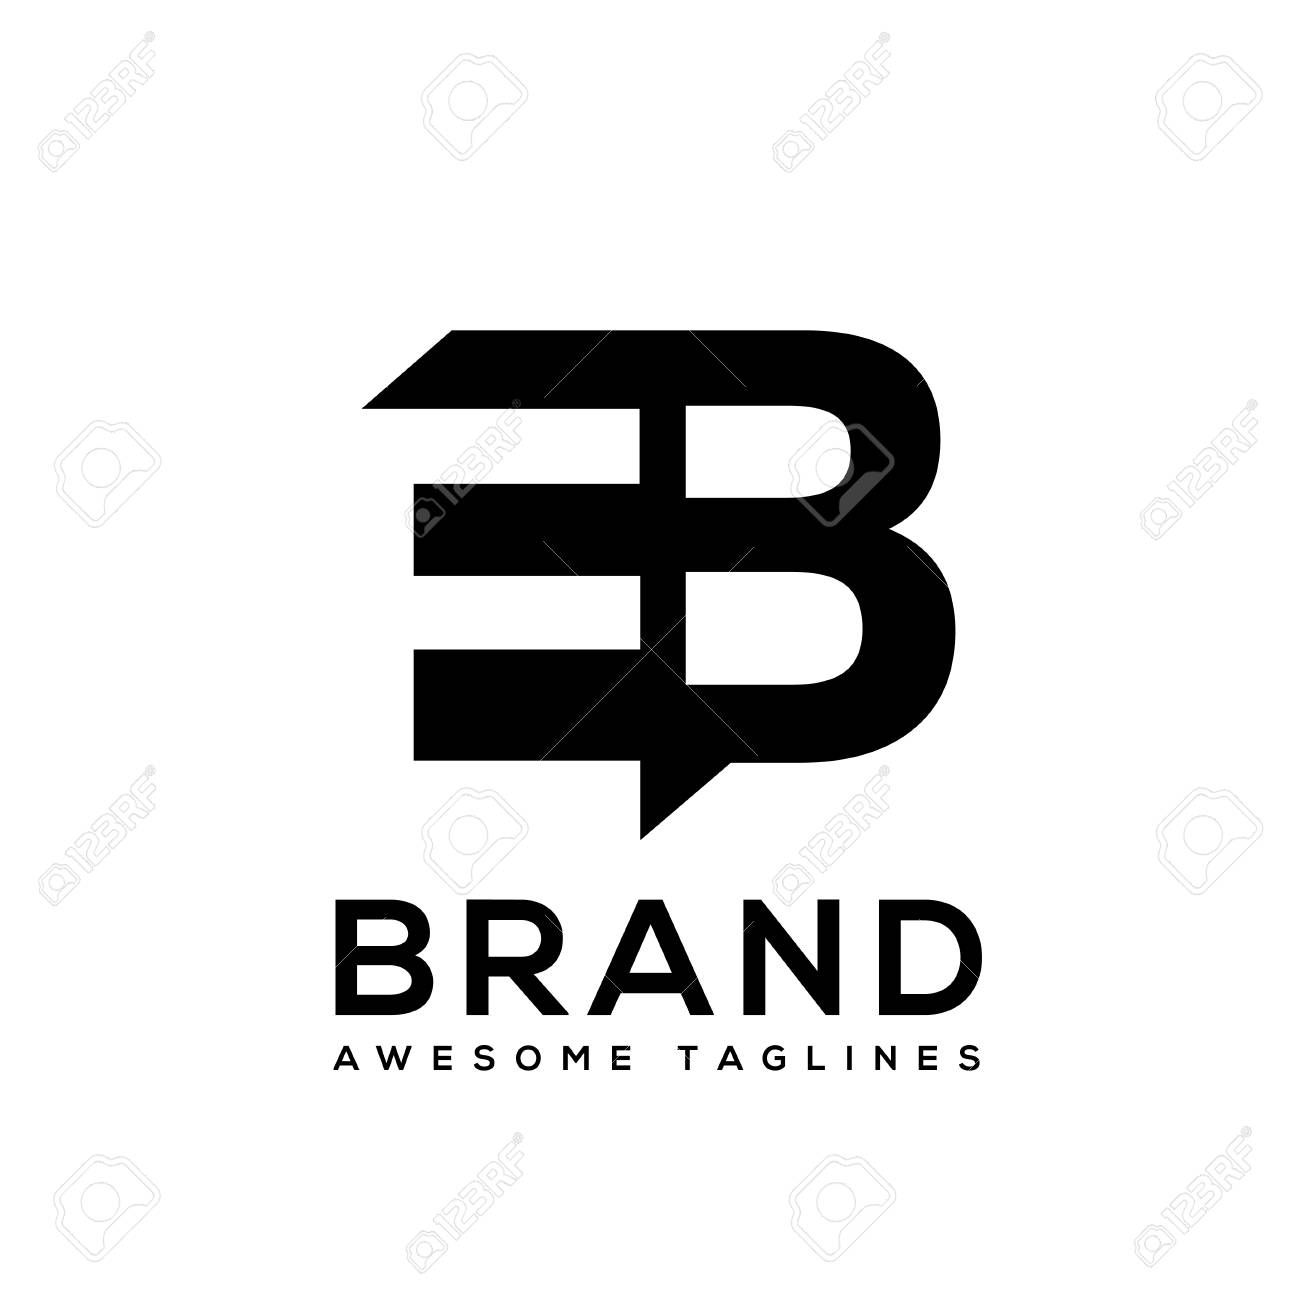 Creative Letter Eb Logo Design Black And White Logo Elements